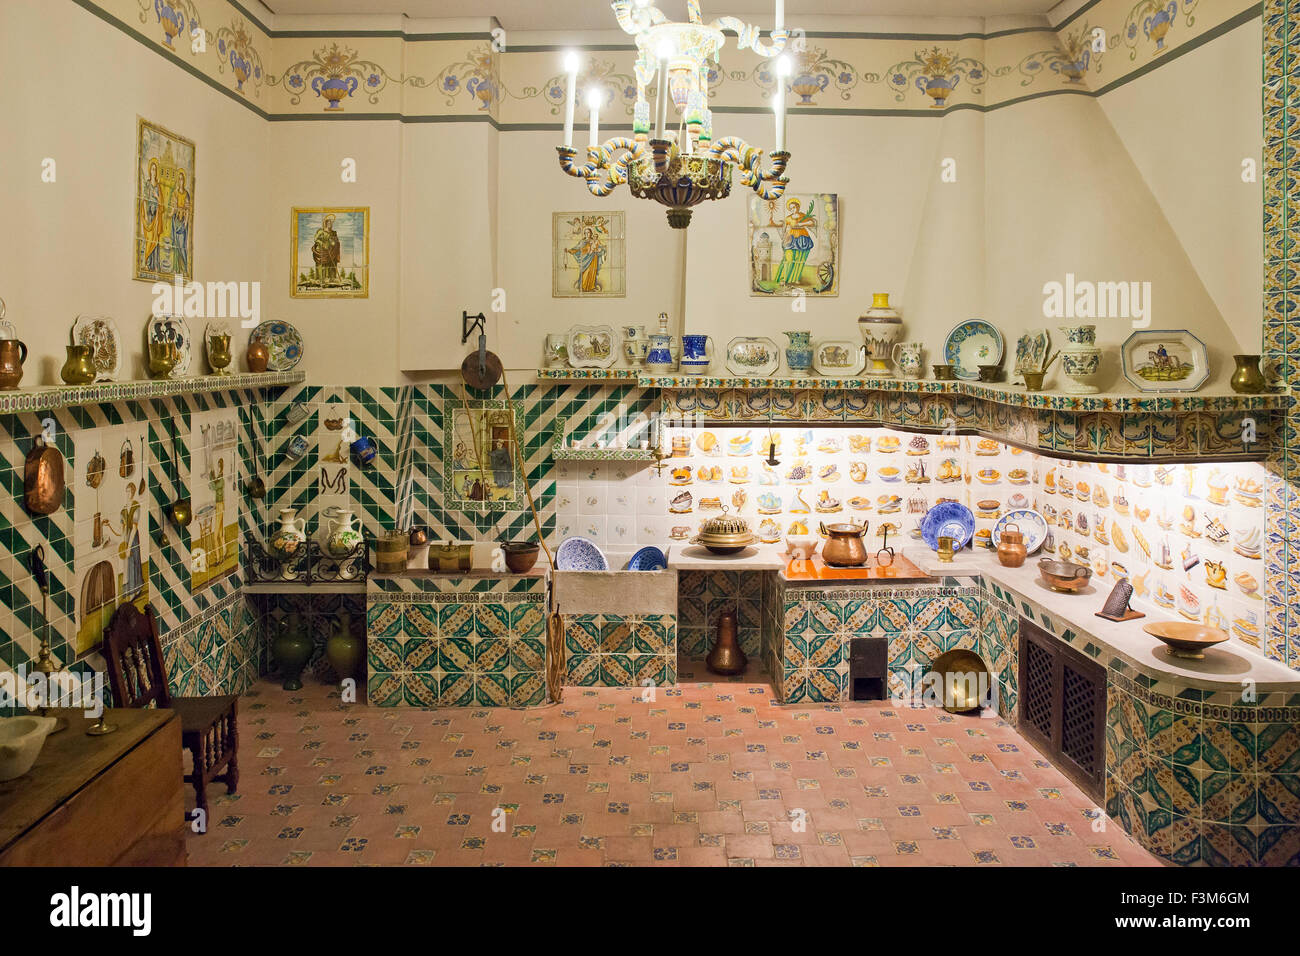 Quirky Tiles For Kitchen Spanish